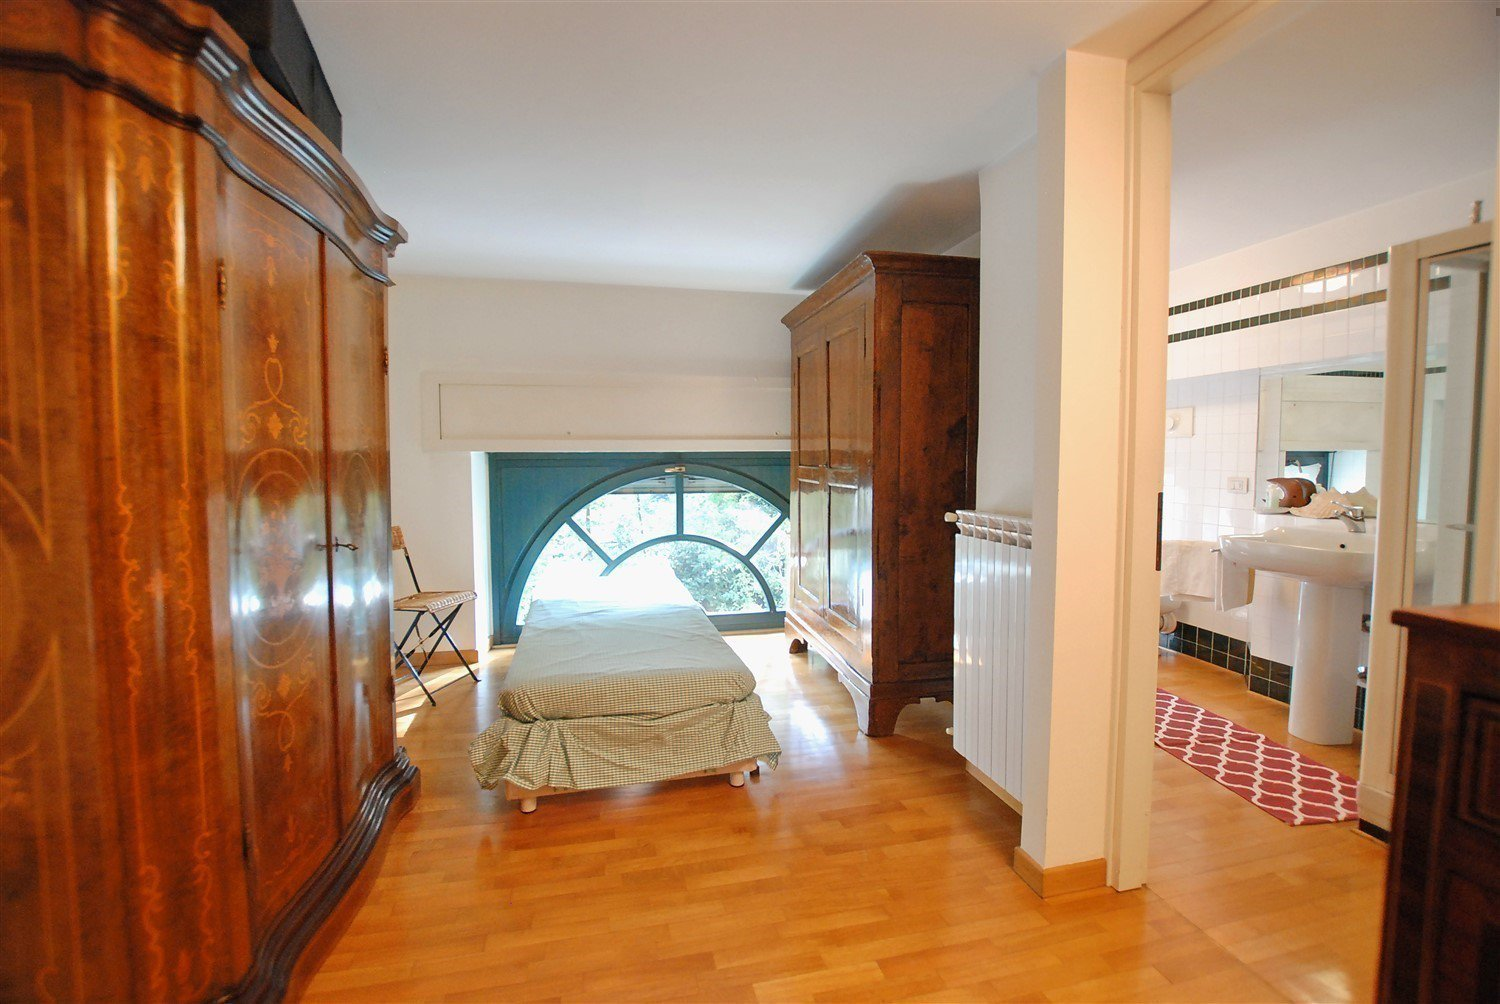 Prestigious apartment for sale in Castelletto Ticino- room